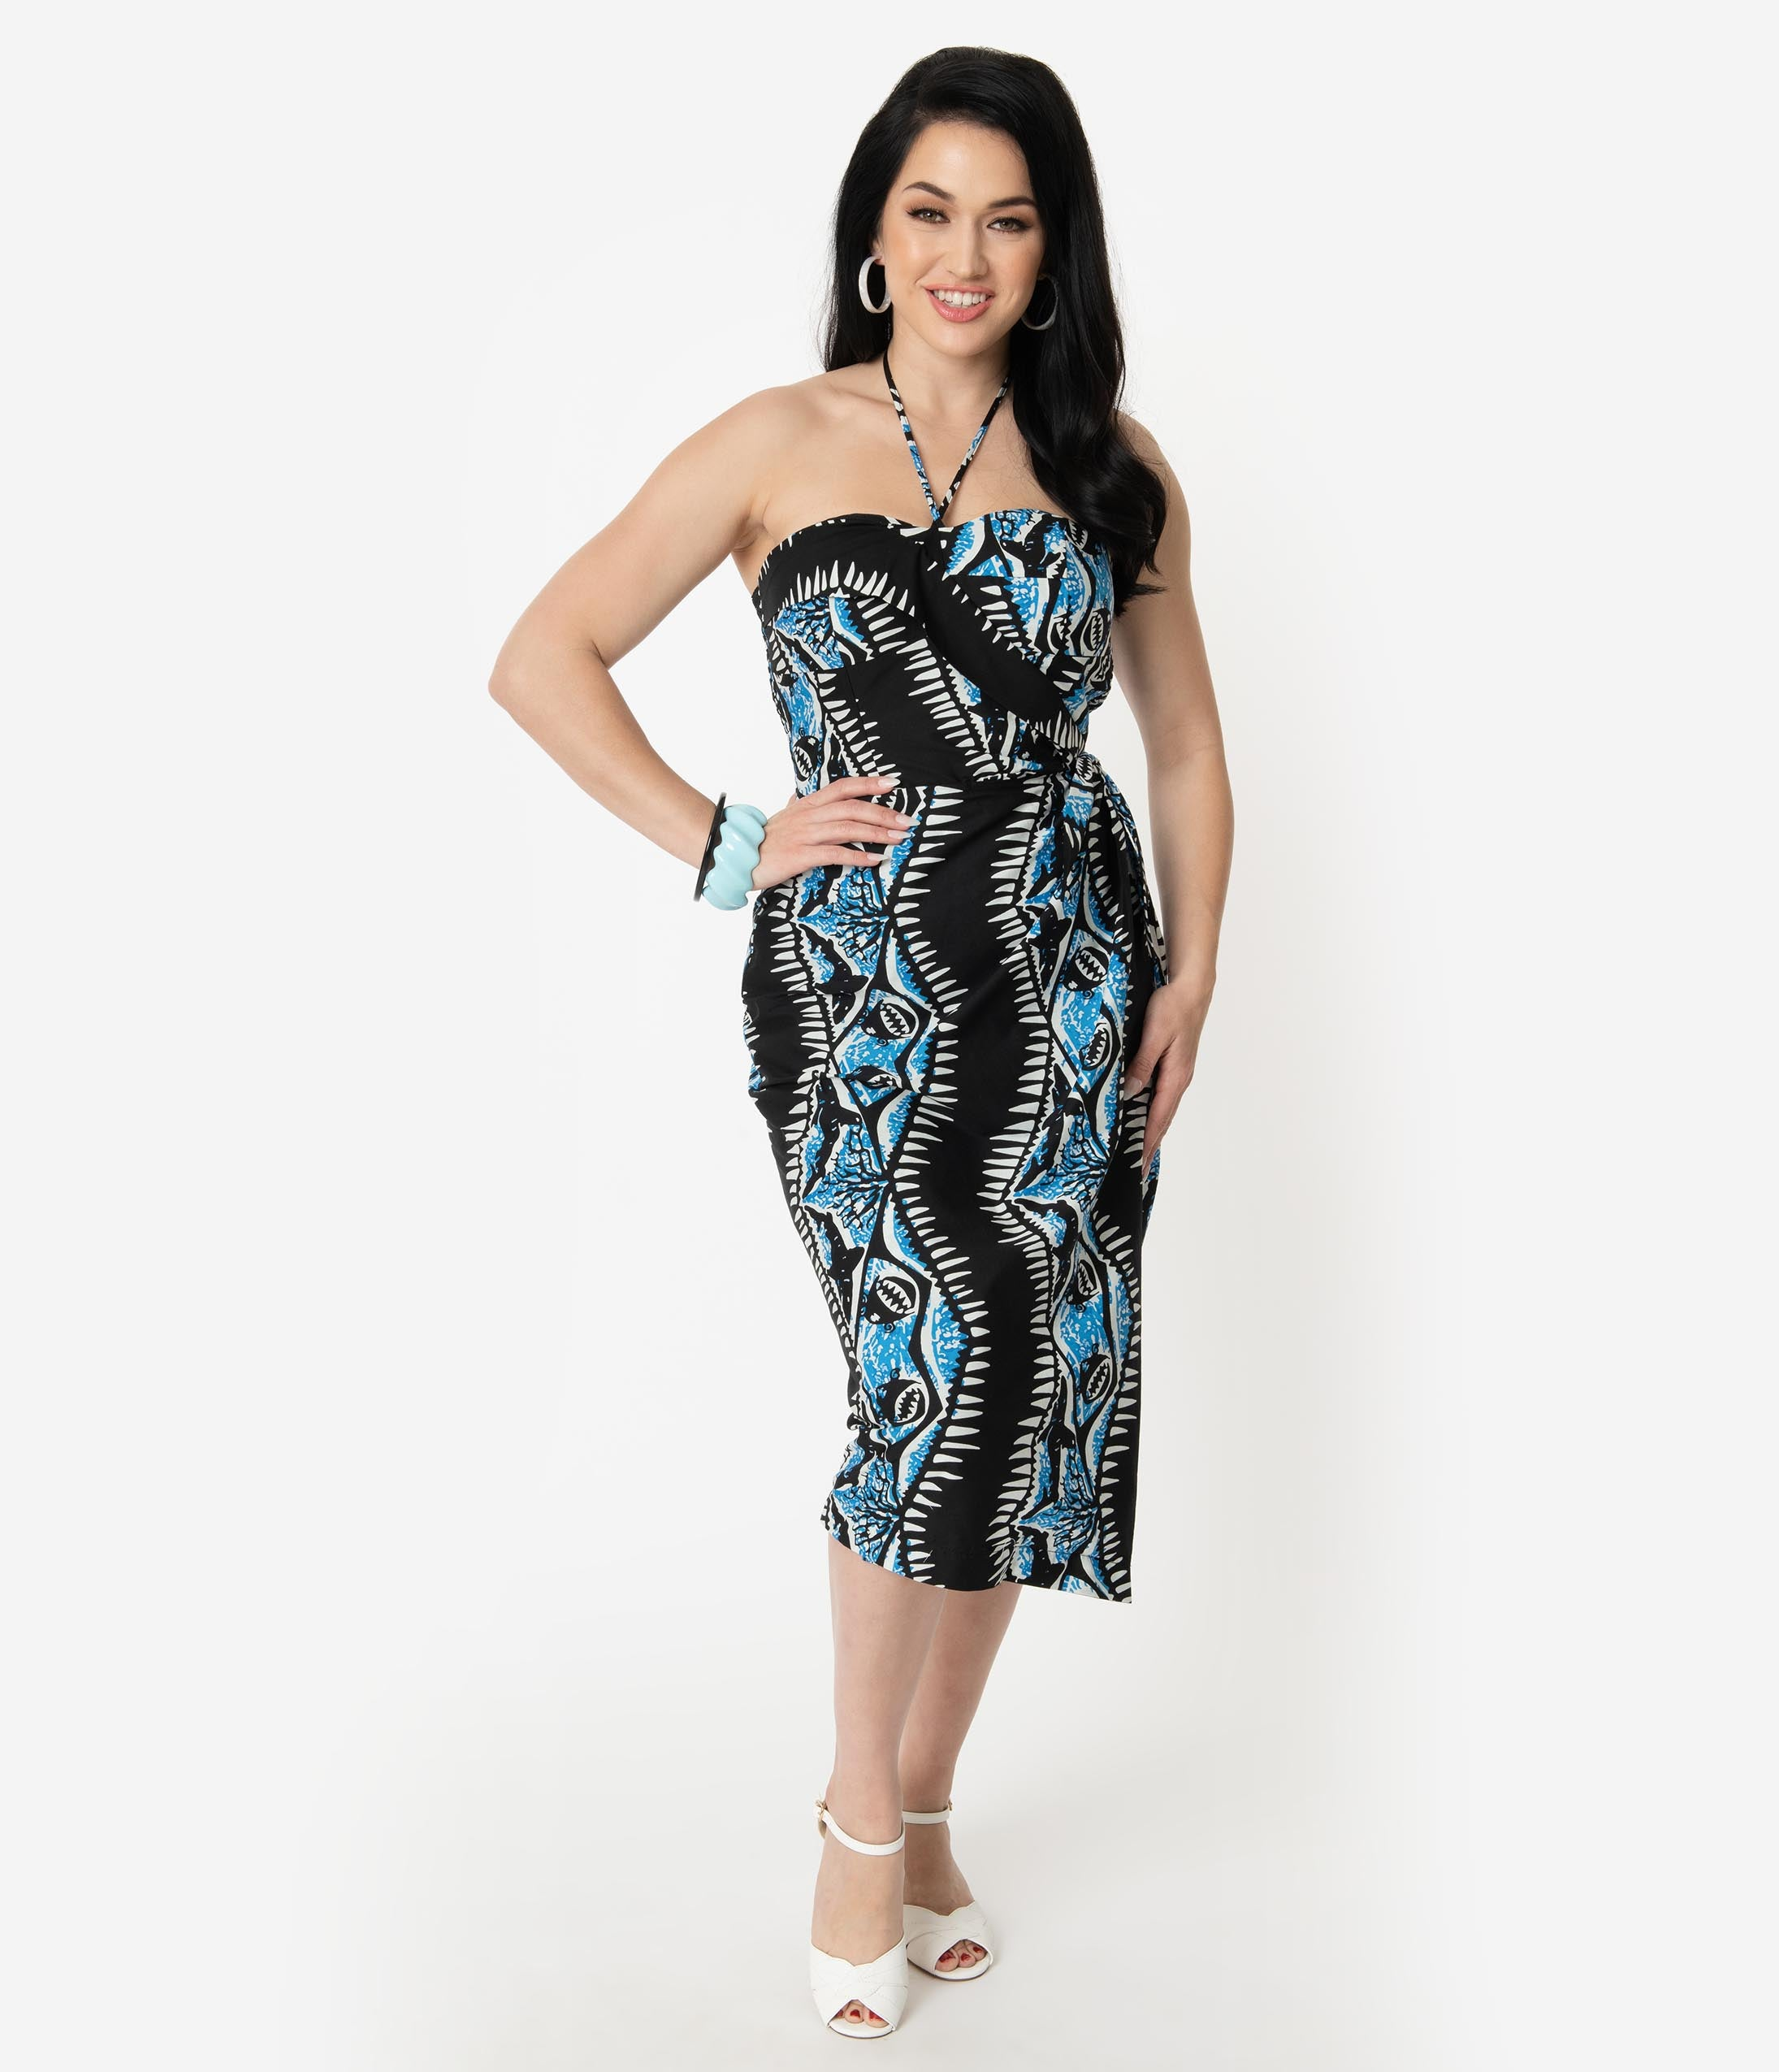 Hawaiian Dress Plus Size Uk